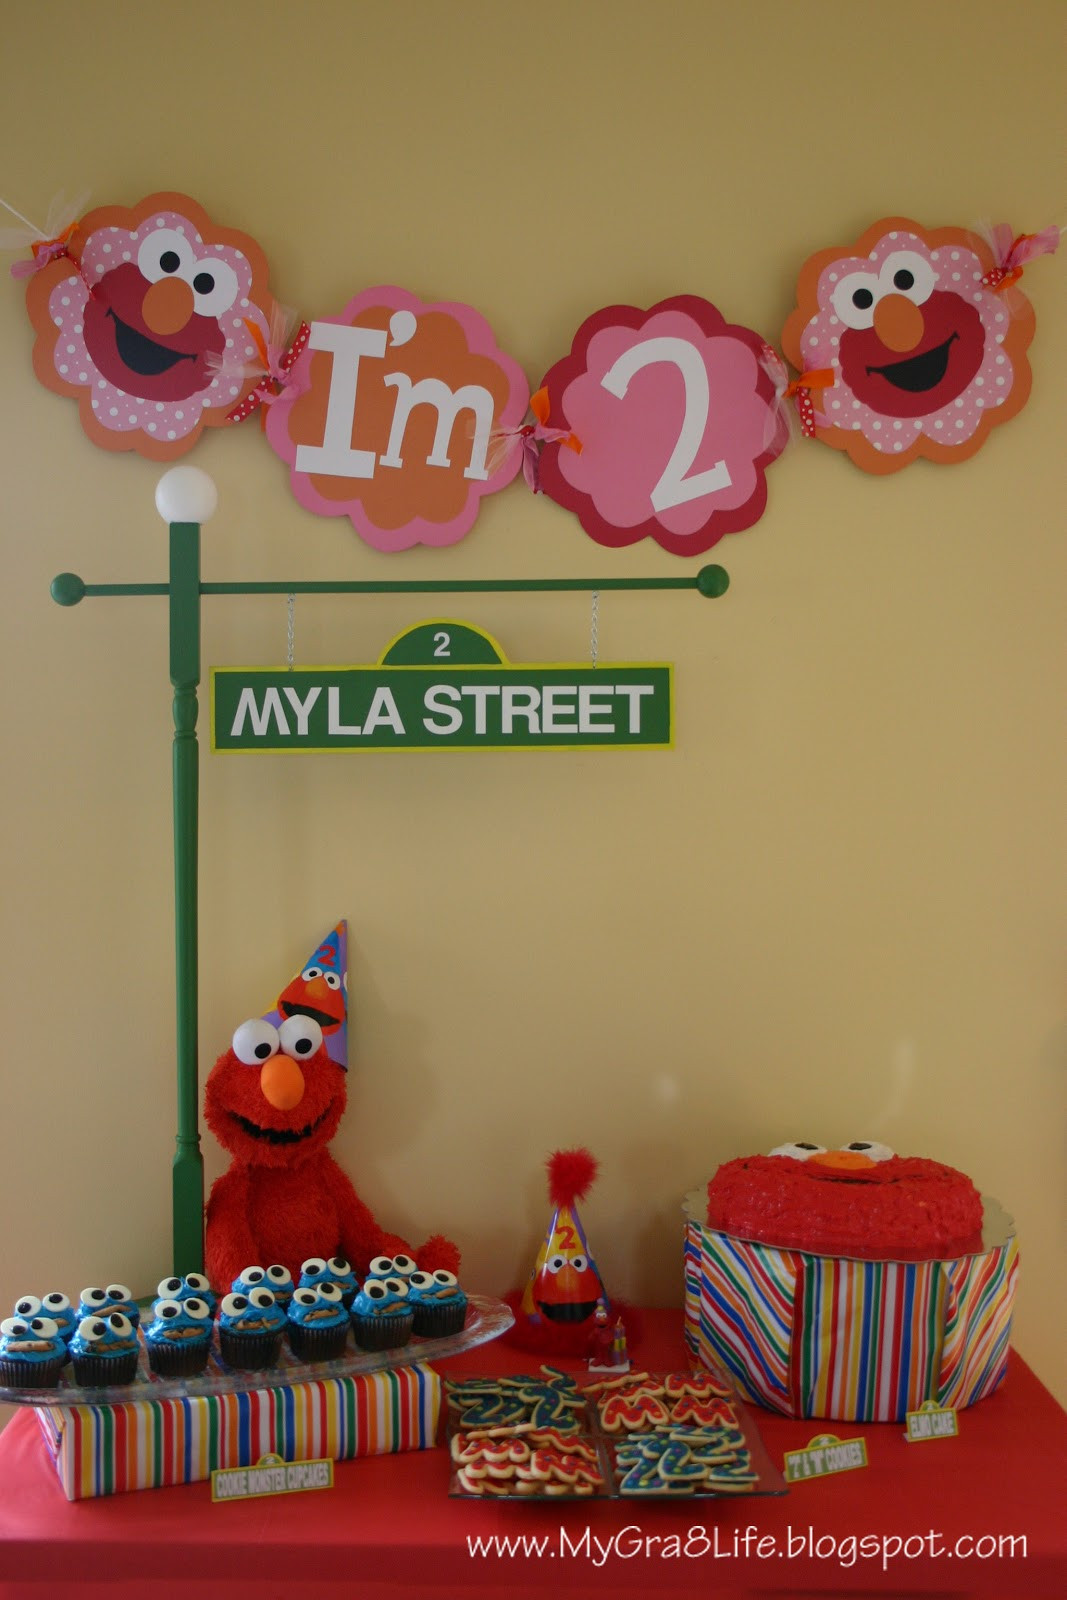 Best ideas about Elmo Birthday Decorations . Save or Pin My Gra 8 Life Elmo Party Now.